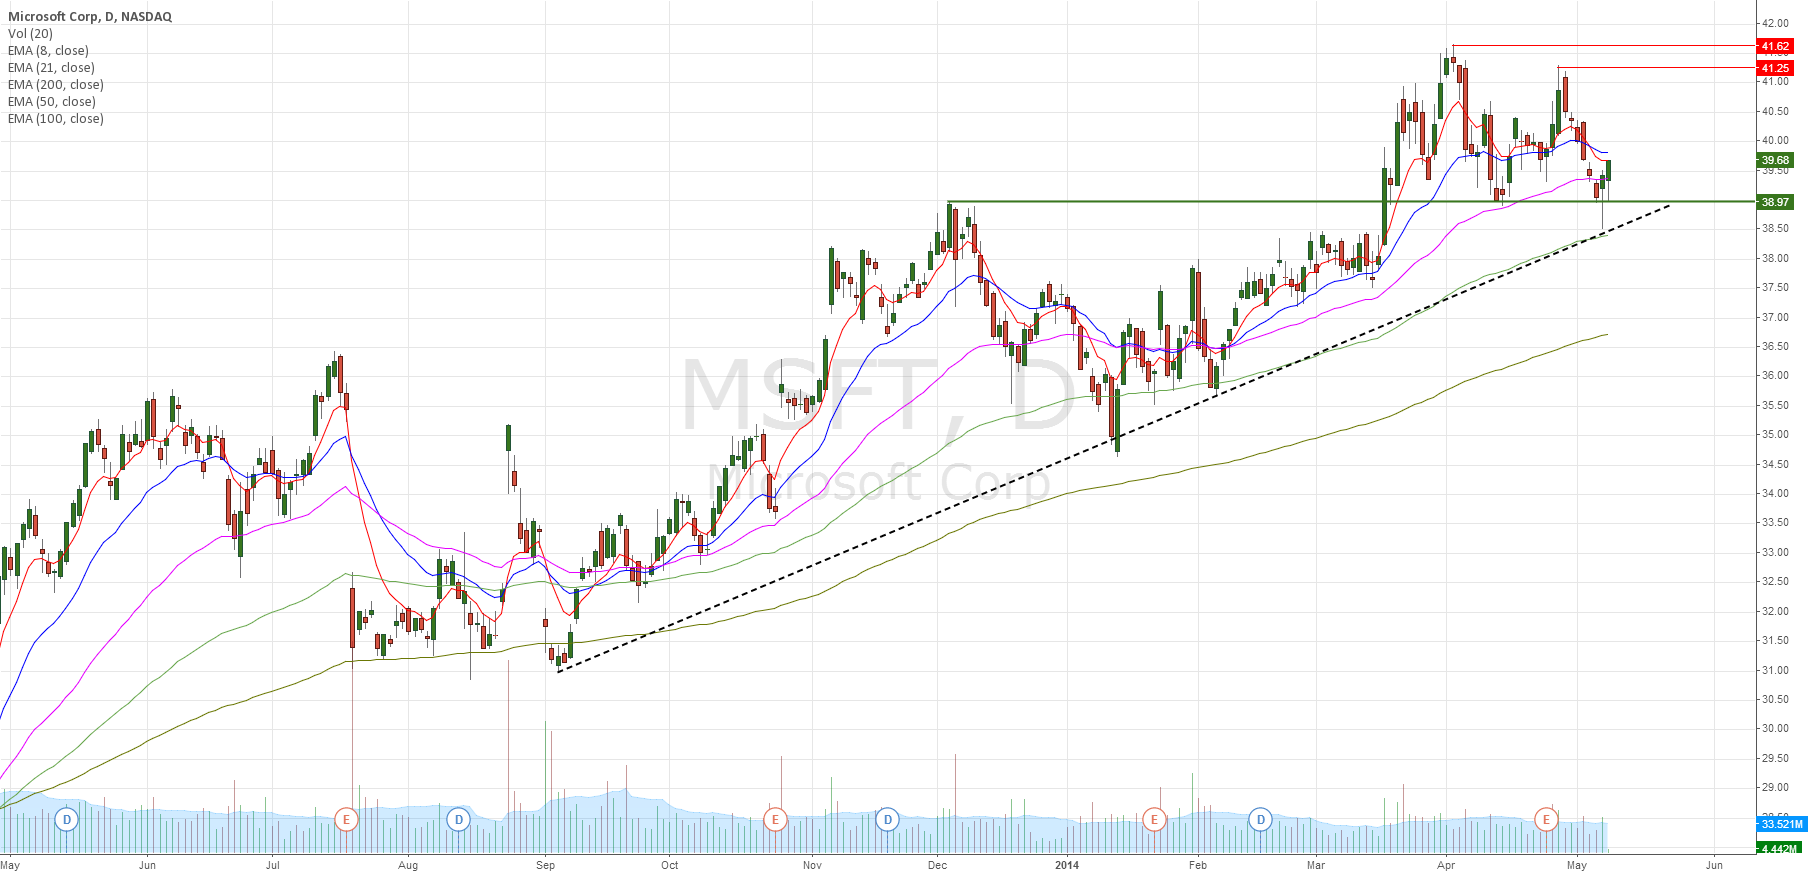 MSFT bounced from major trend line